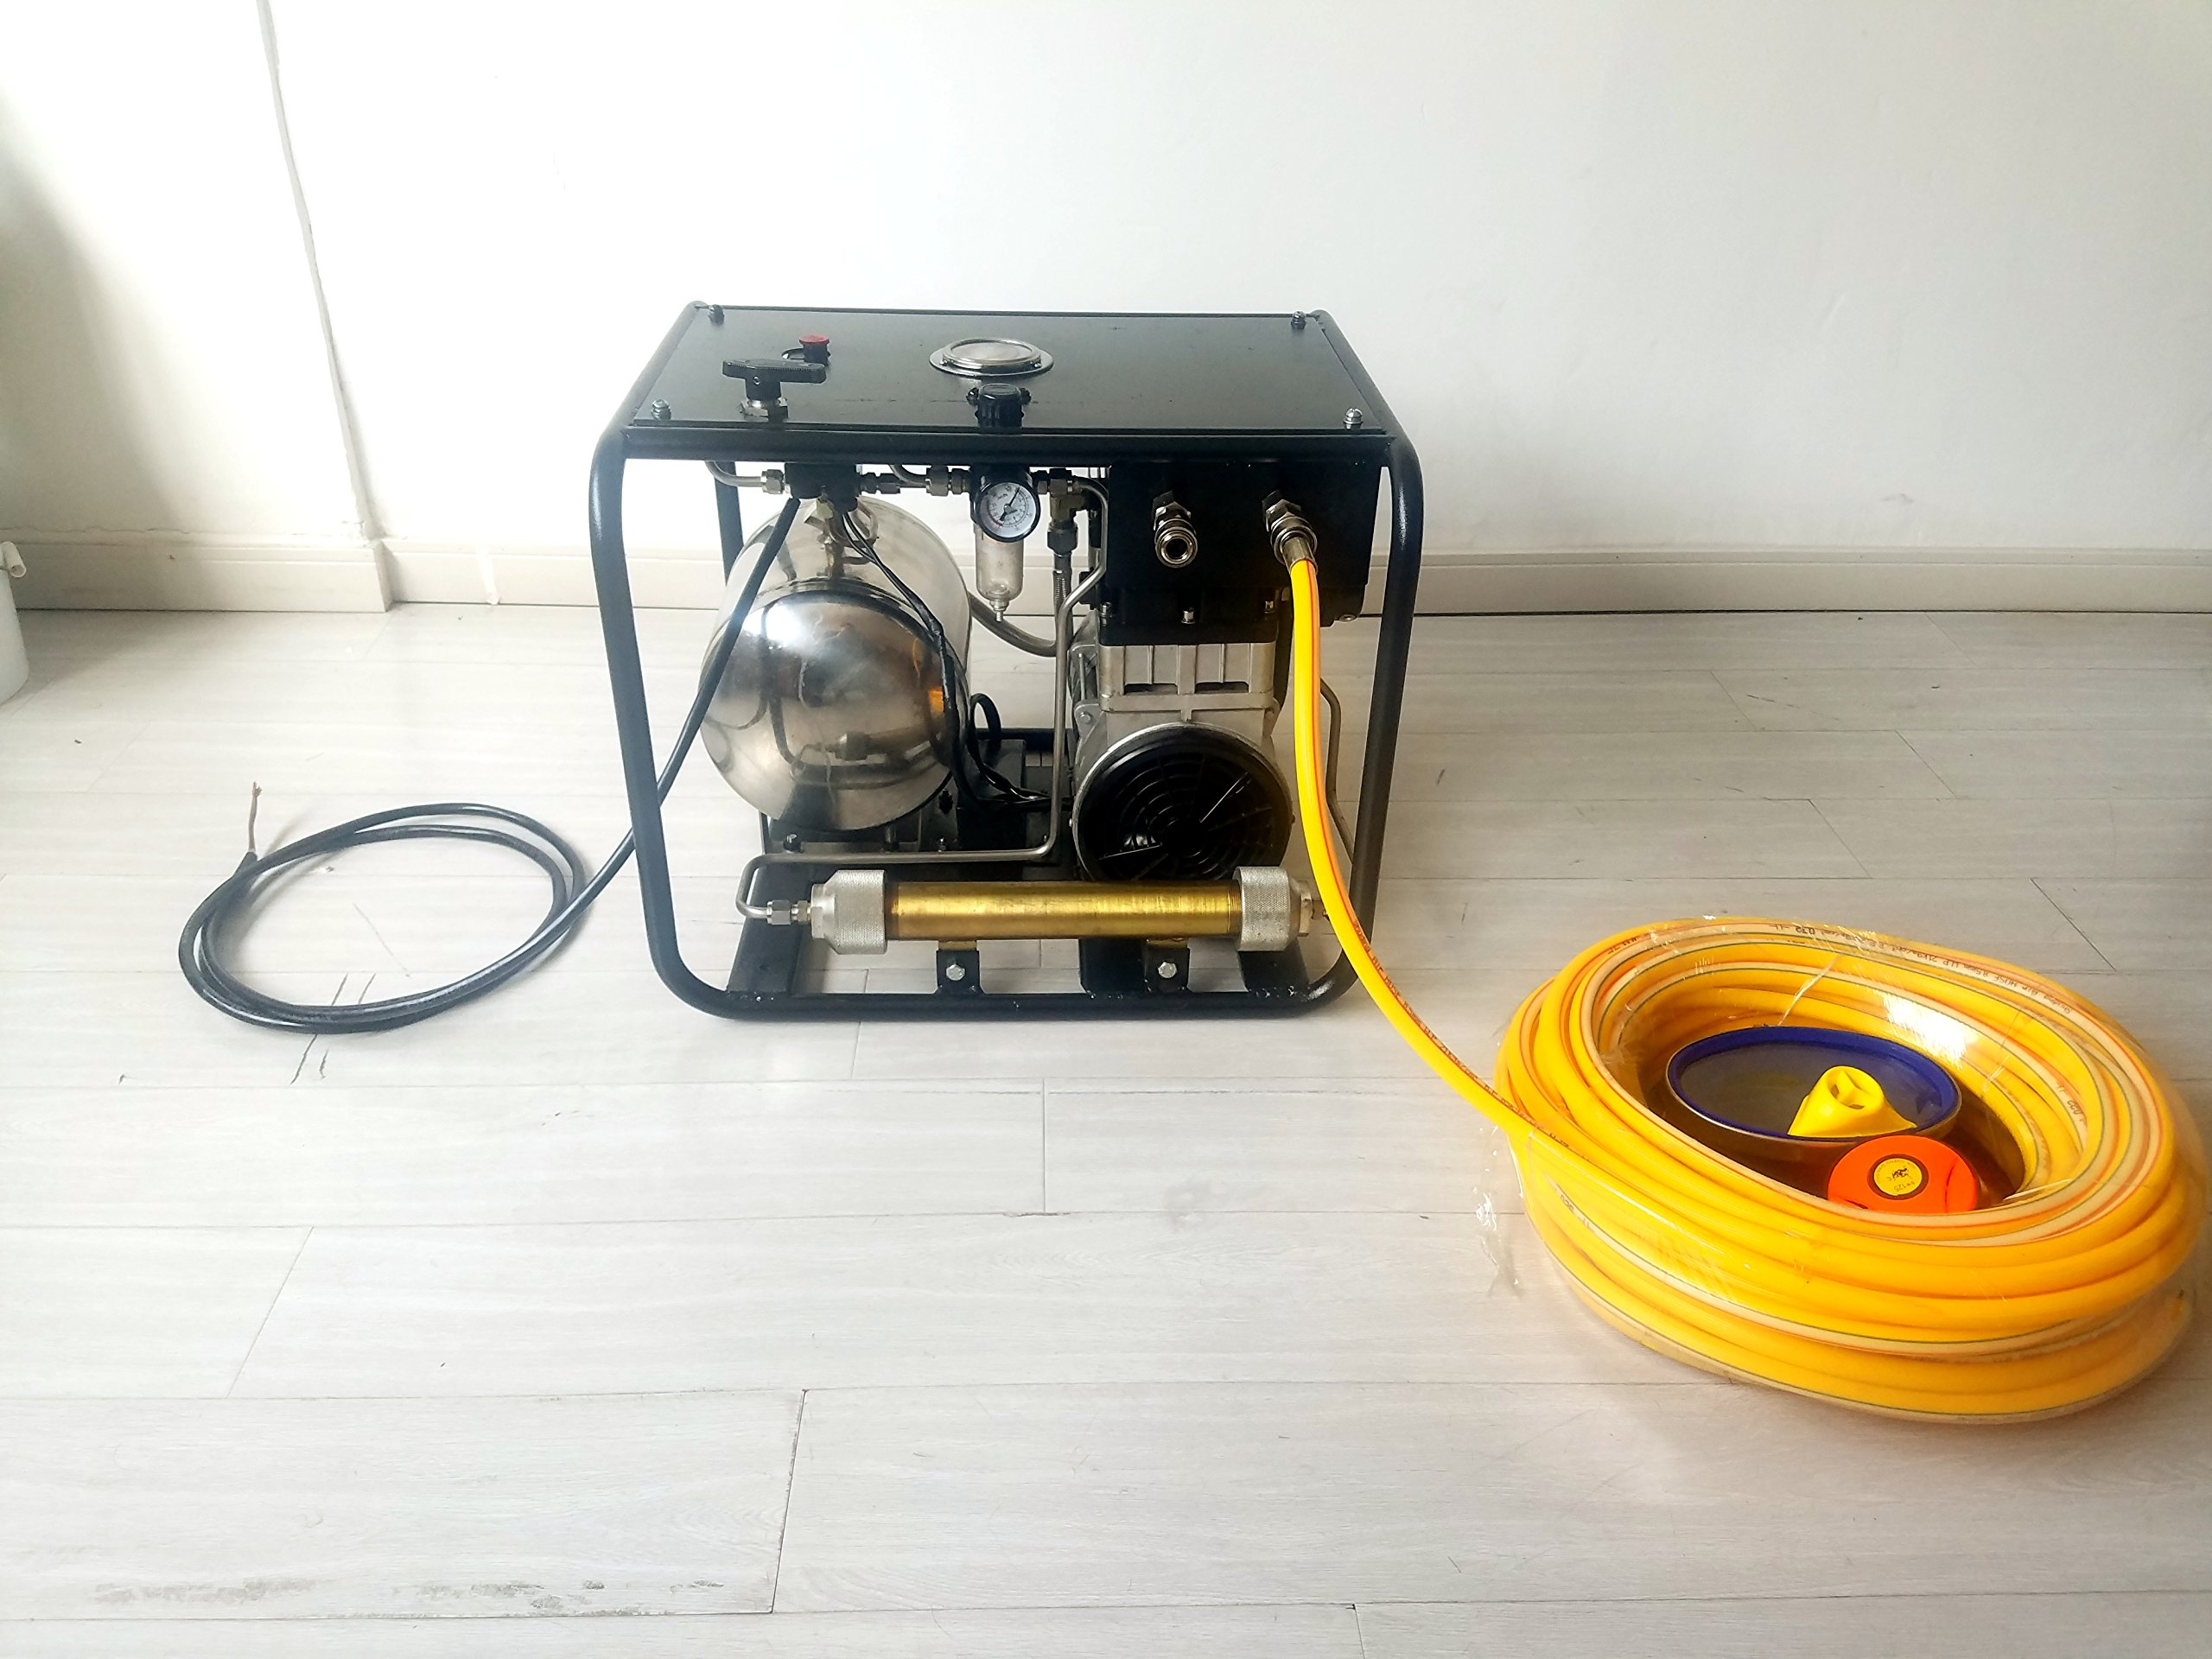 D Machinery Oil-free Hookah Dive System Third Lung Serface, 110V Electronic Compressor with 15m / 50 ft Hose & Regulator/Respirator, SCU80E (1100W) by D Machinery (Image #4)